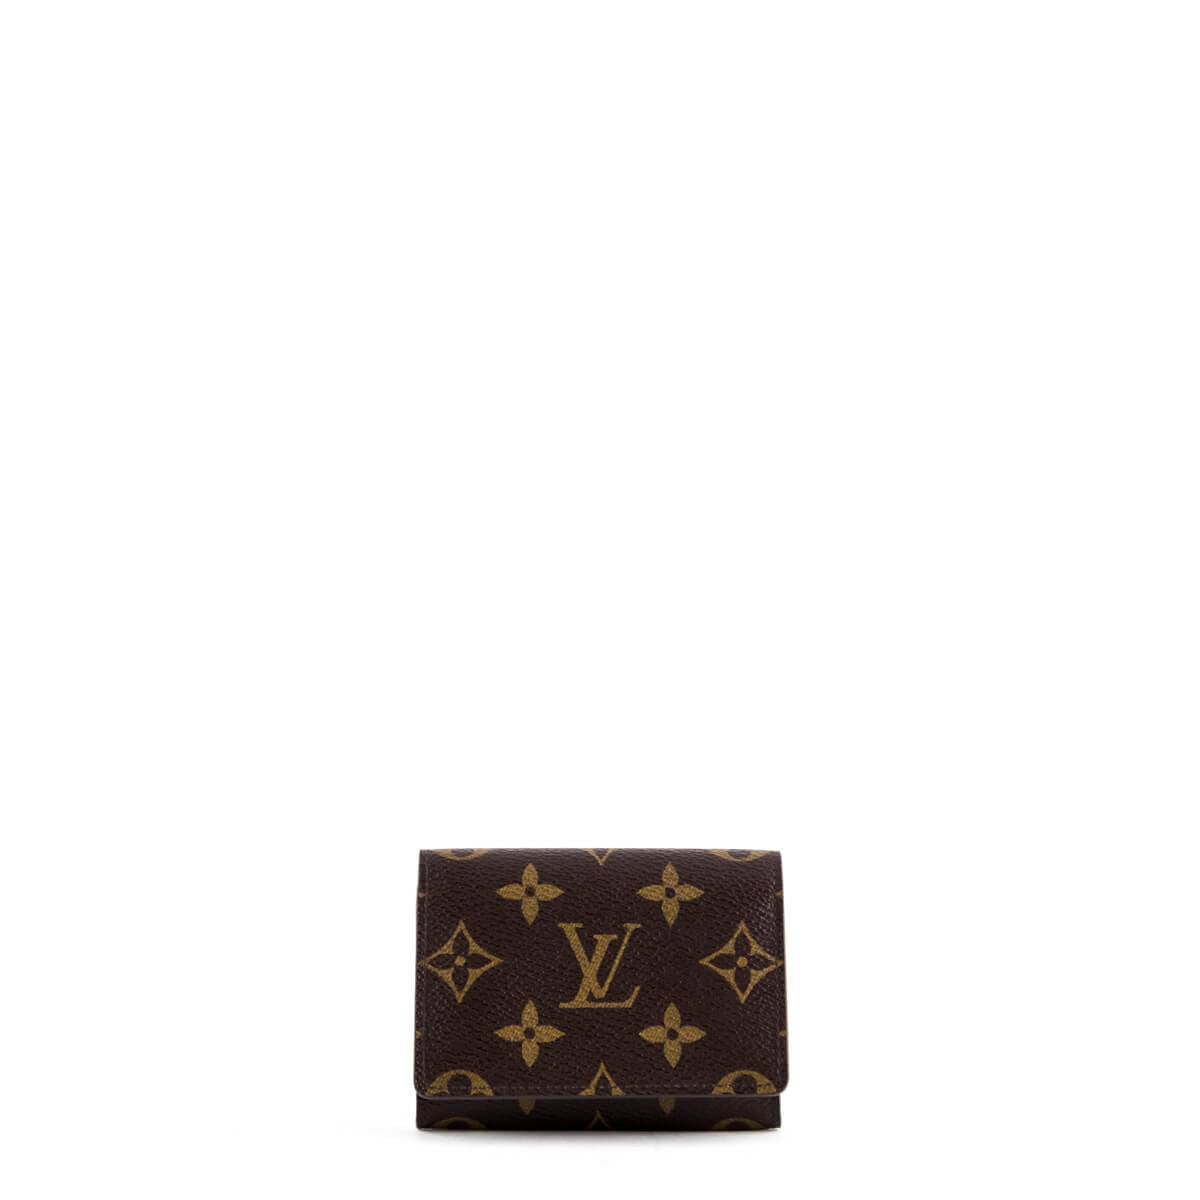 Louis Vuitton Monogram Business Card Holder - LV Leather Goods